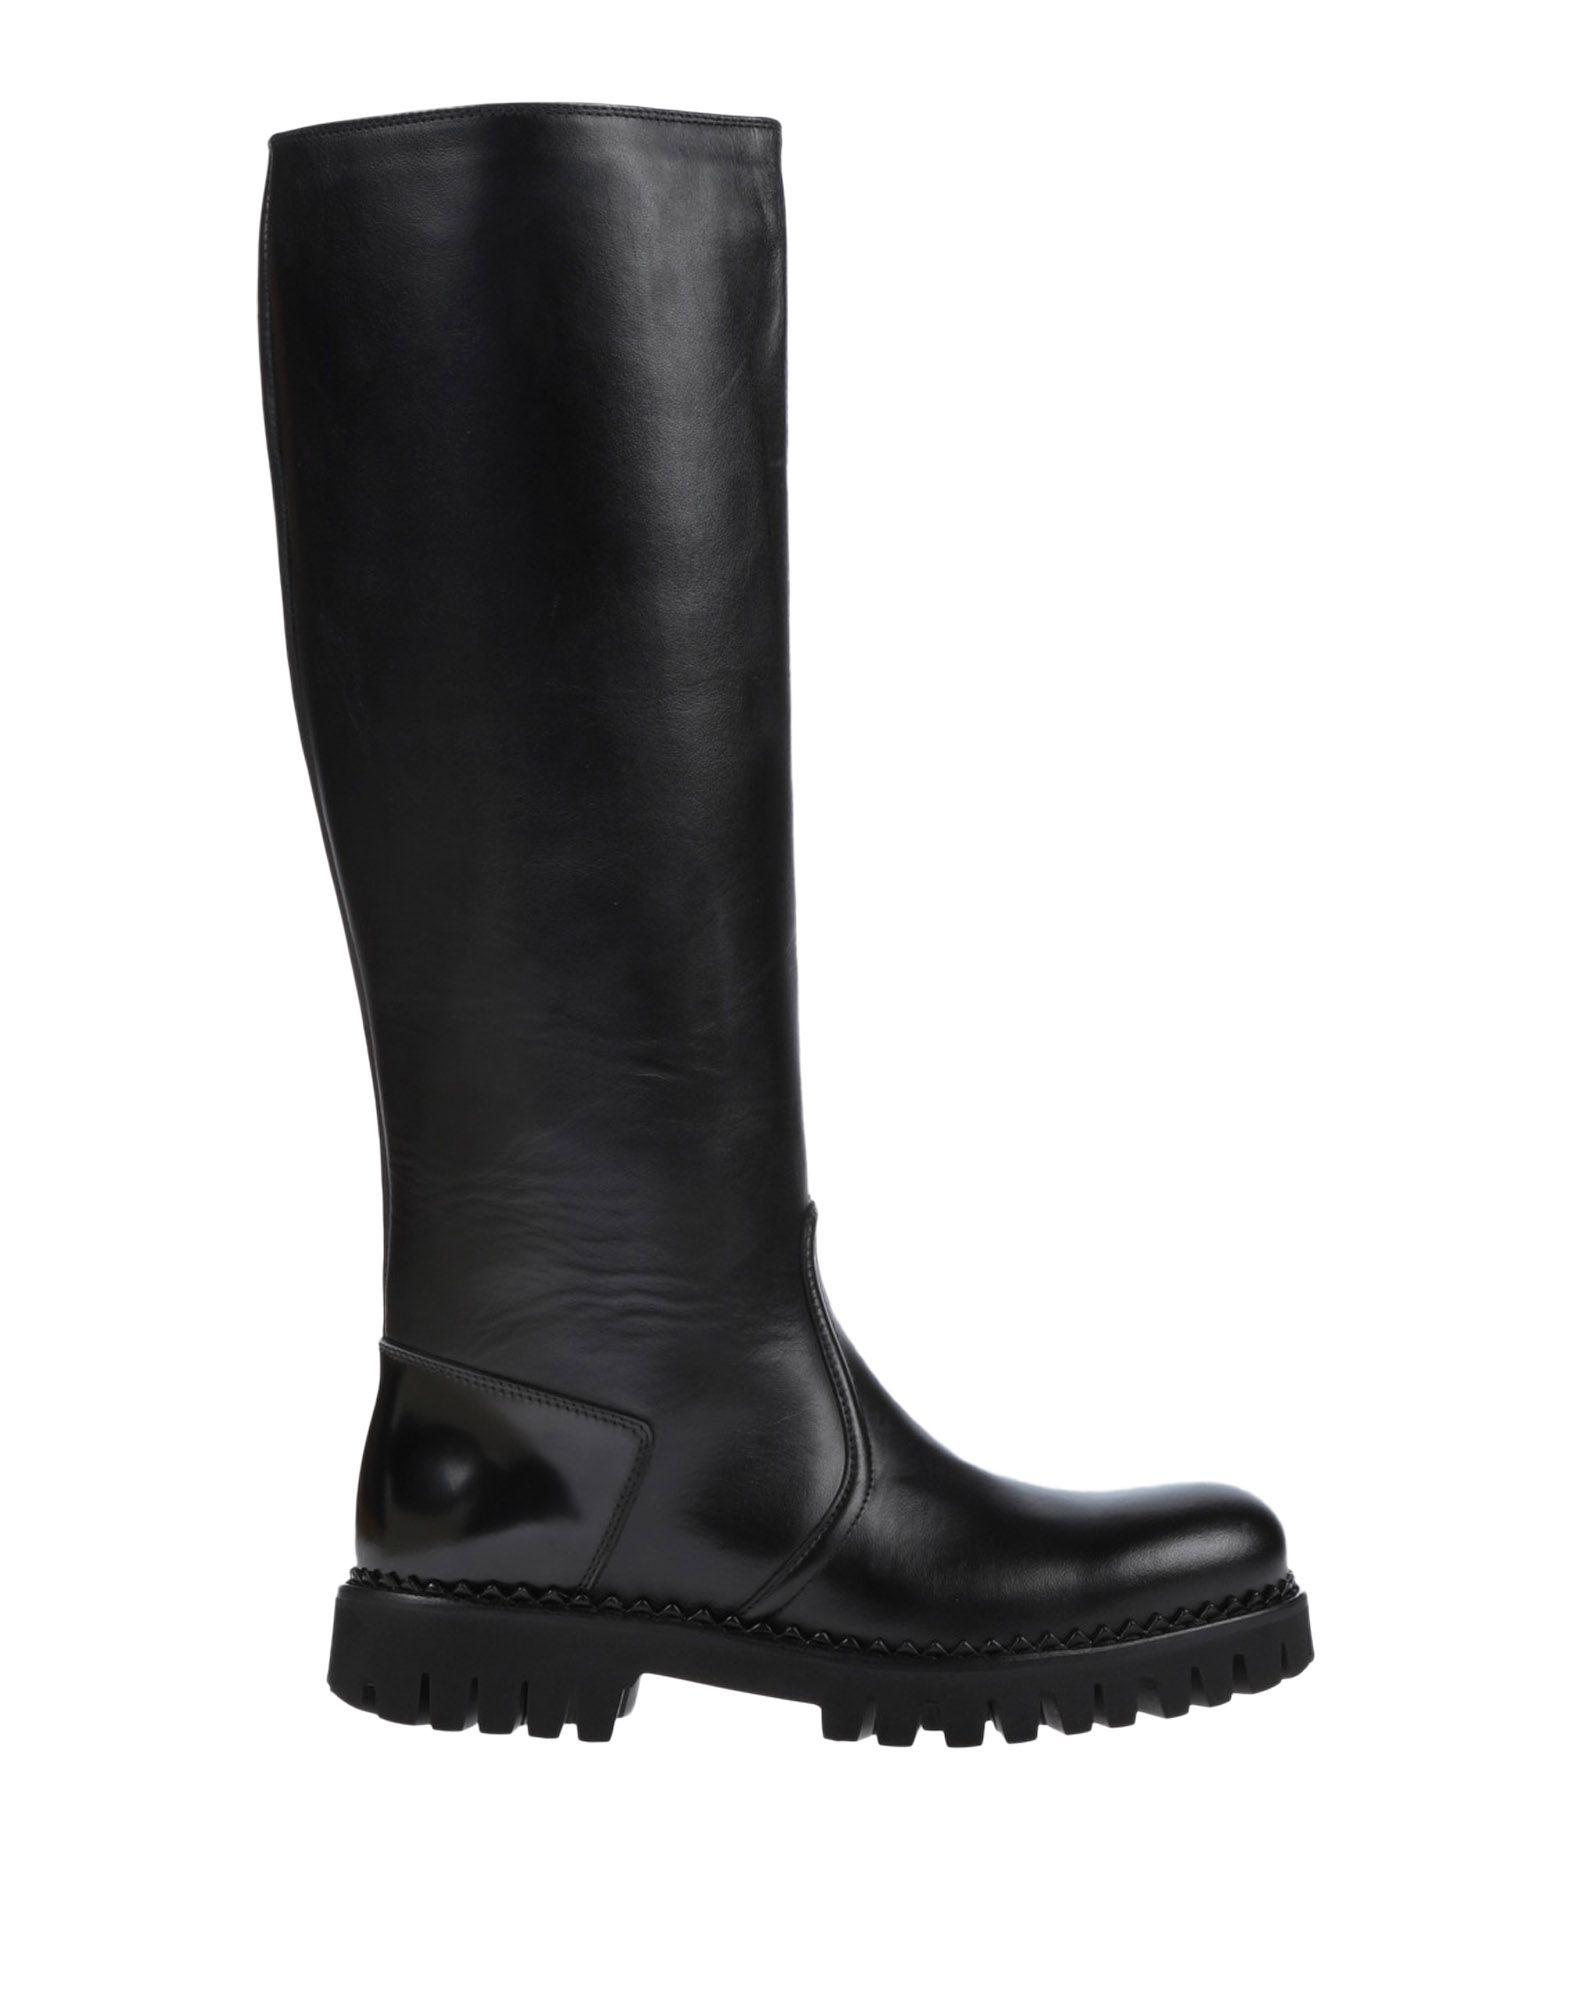 John Galliano Boots In Black